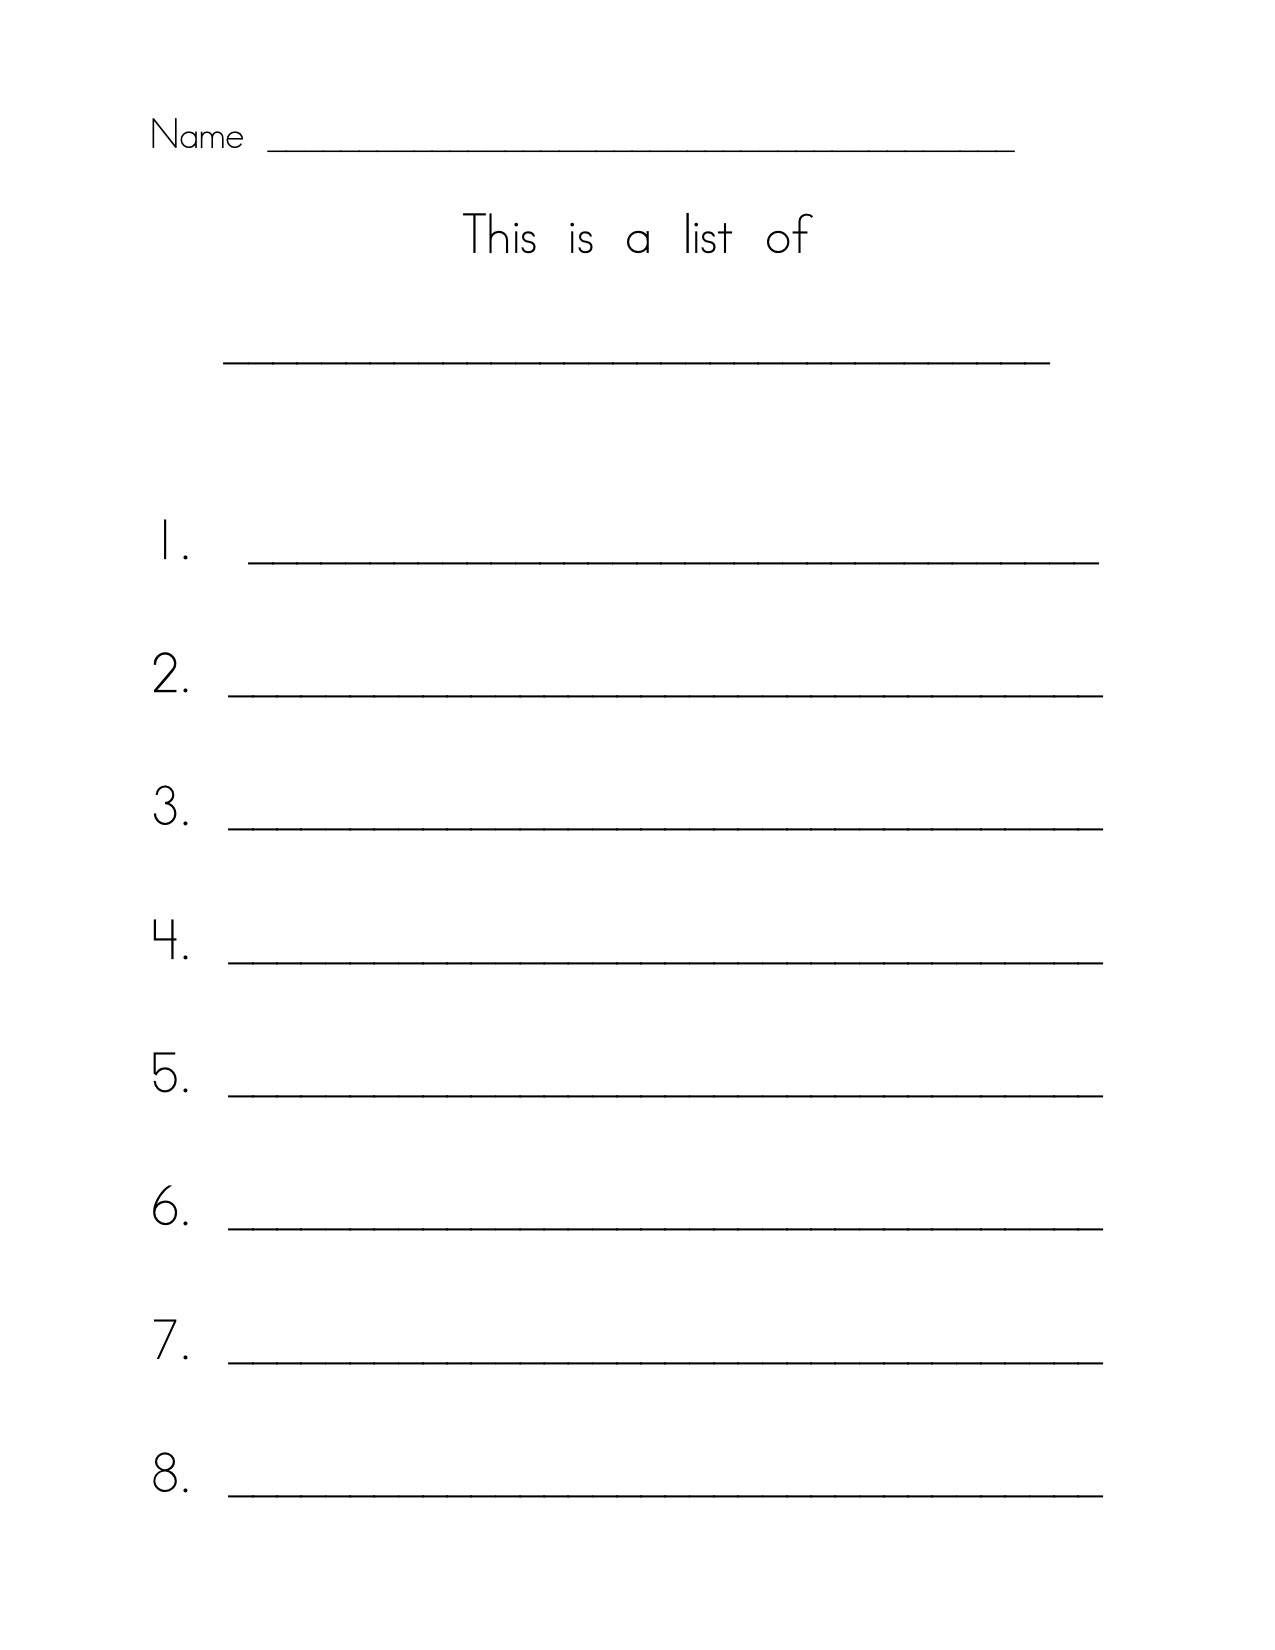 5 Best Images Of Printable List With Numbered Lines